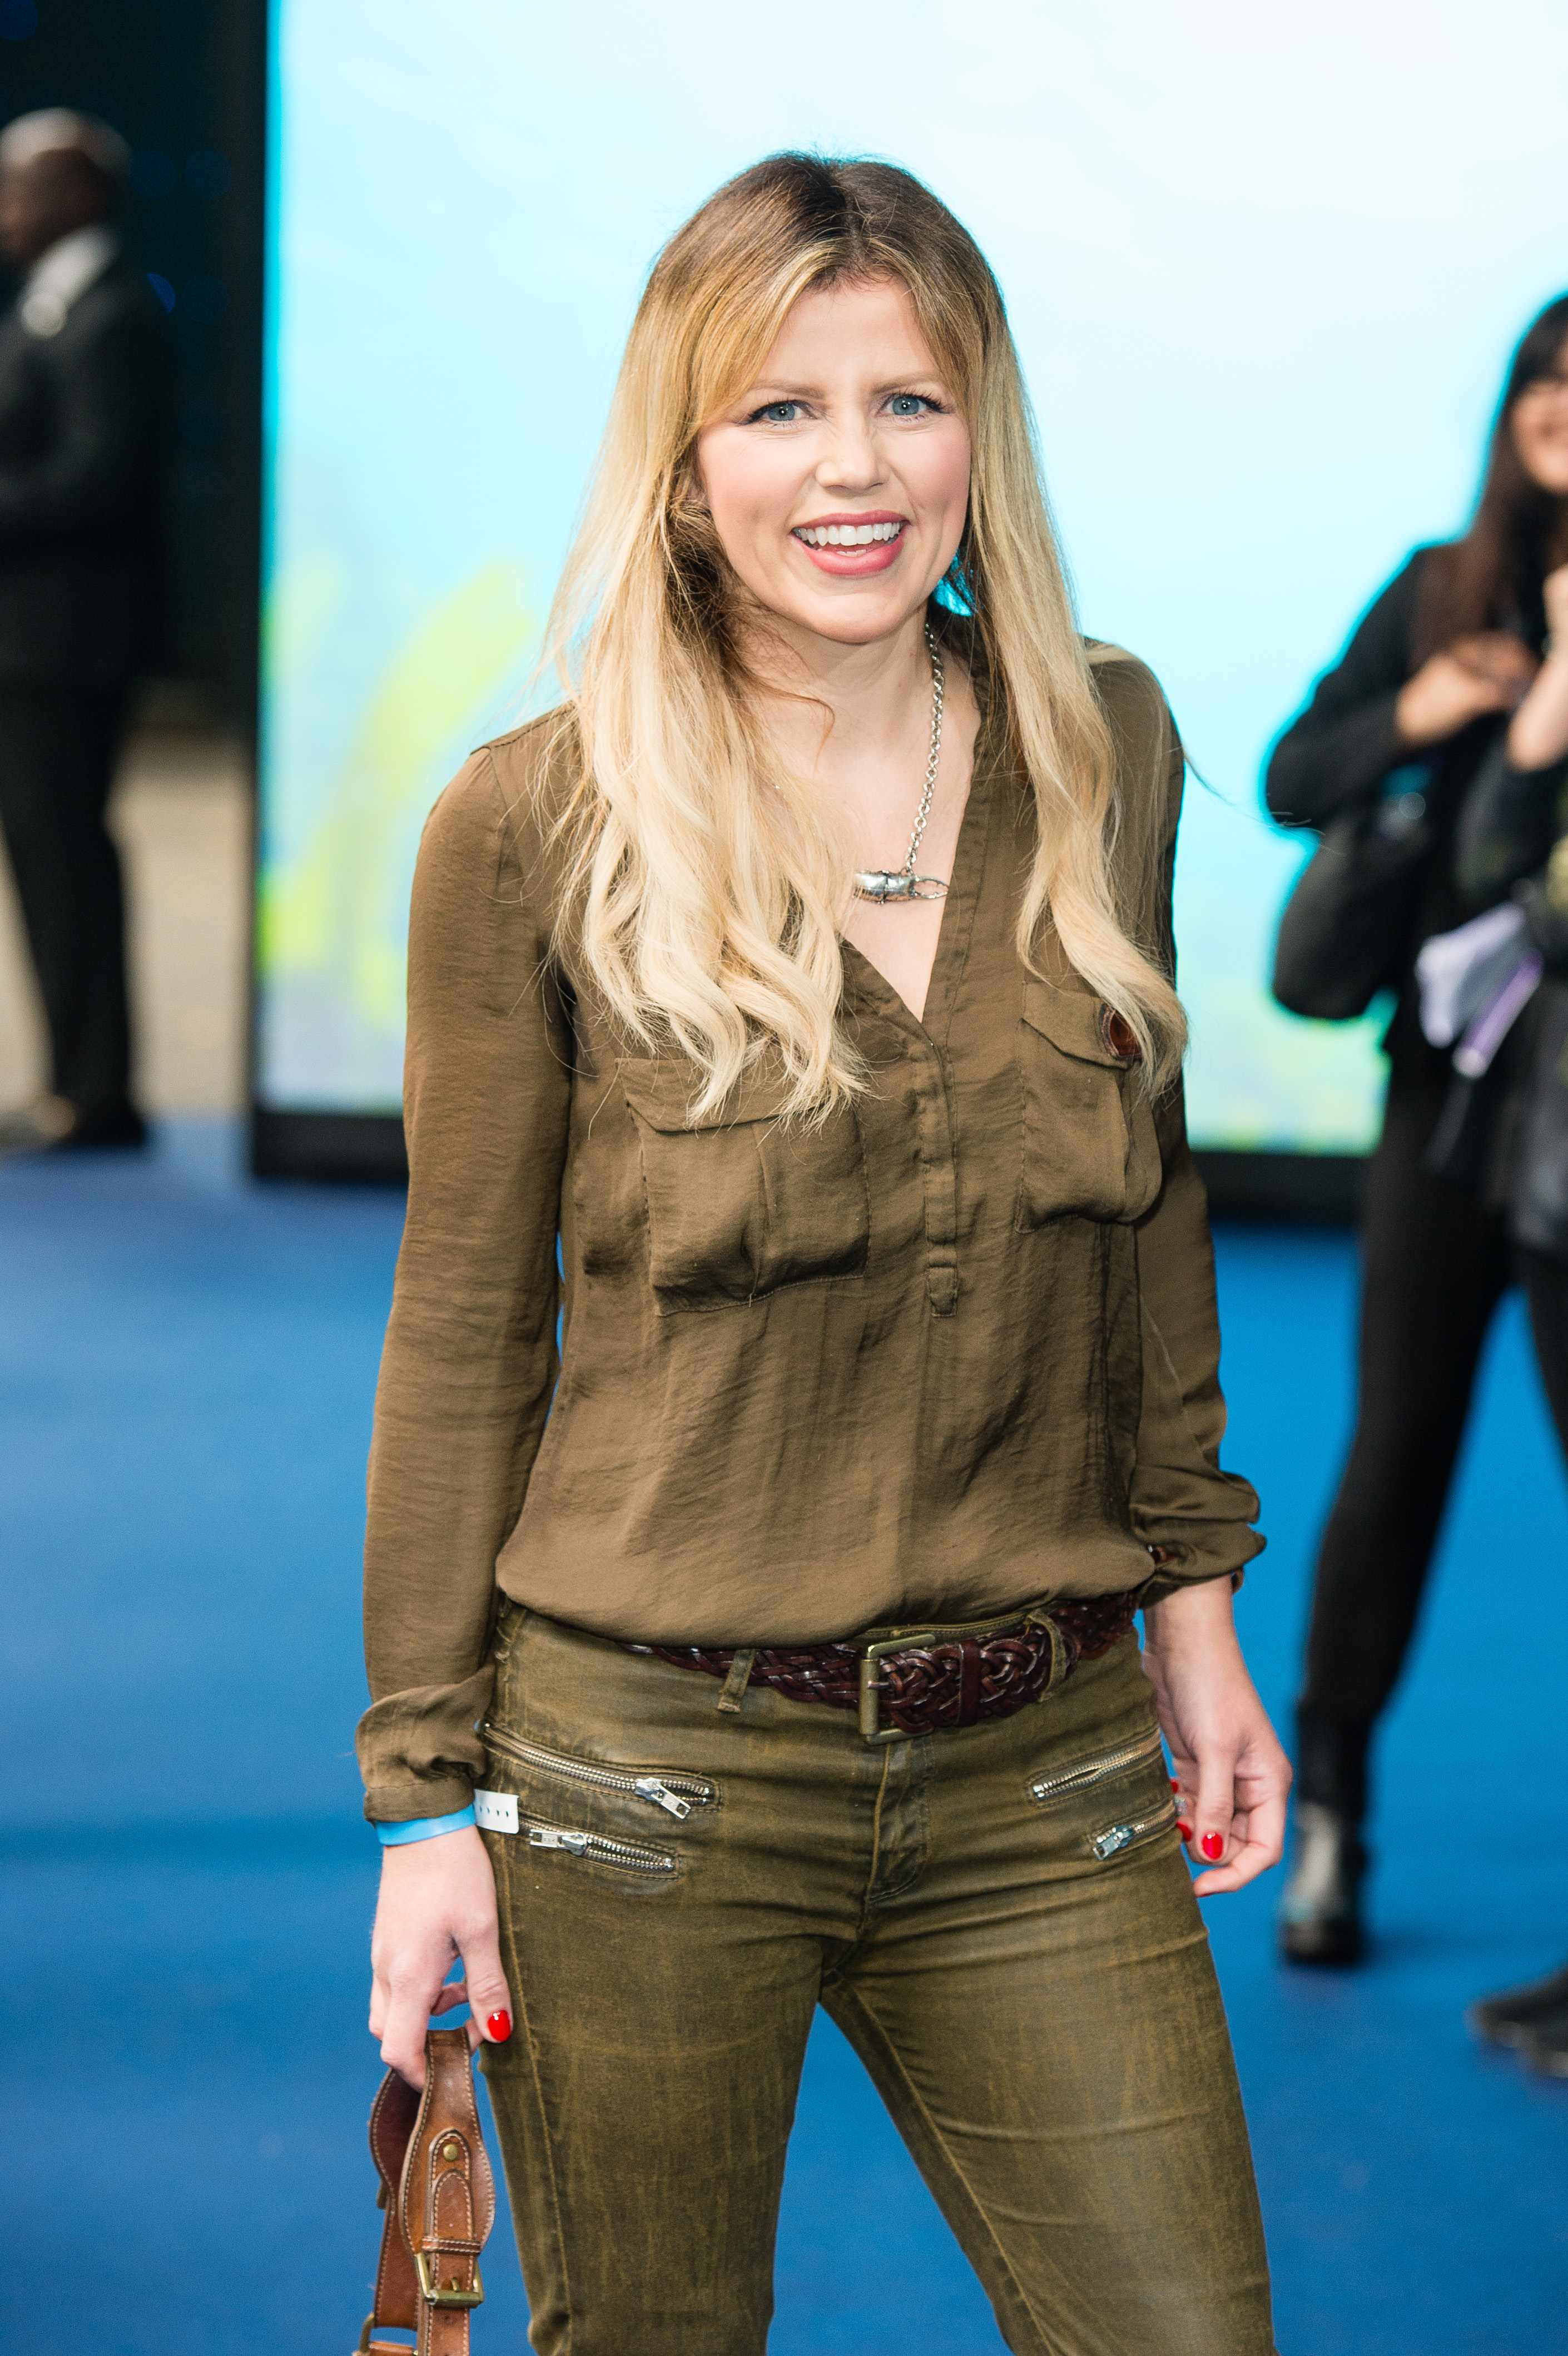 """LONDON, ENGLAND - SEPTEMBER 27:  Ellie Harrison attends the World Premiere of """"Blue Planet II"""" on September 27, 2017 in London, United Kingdom.  (Photo by Jeff Spicer/Getty Images)"""